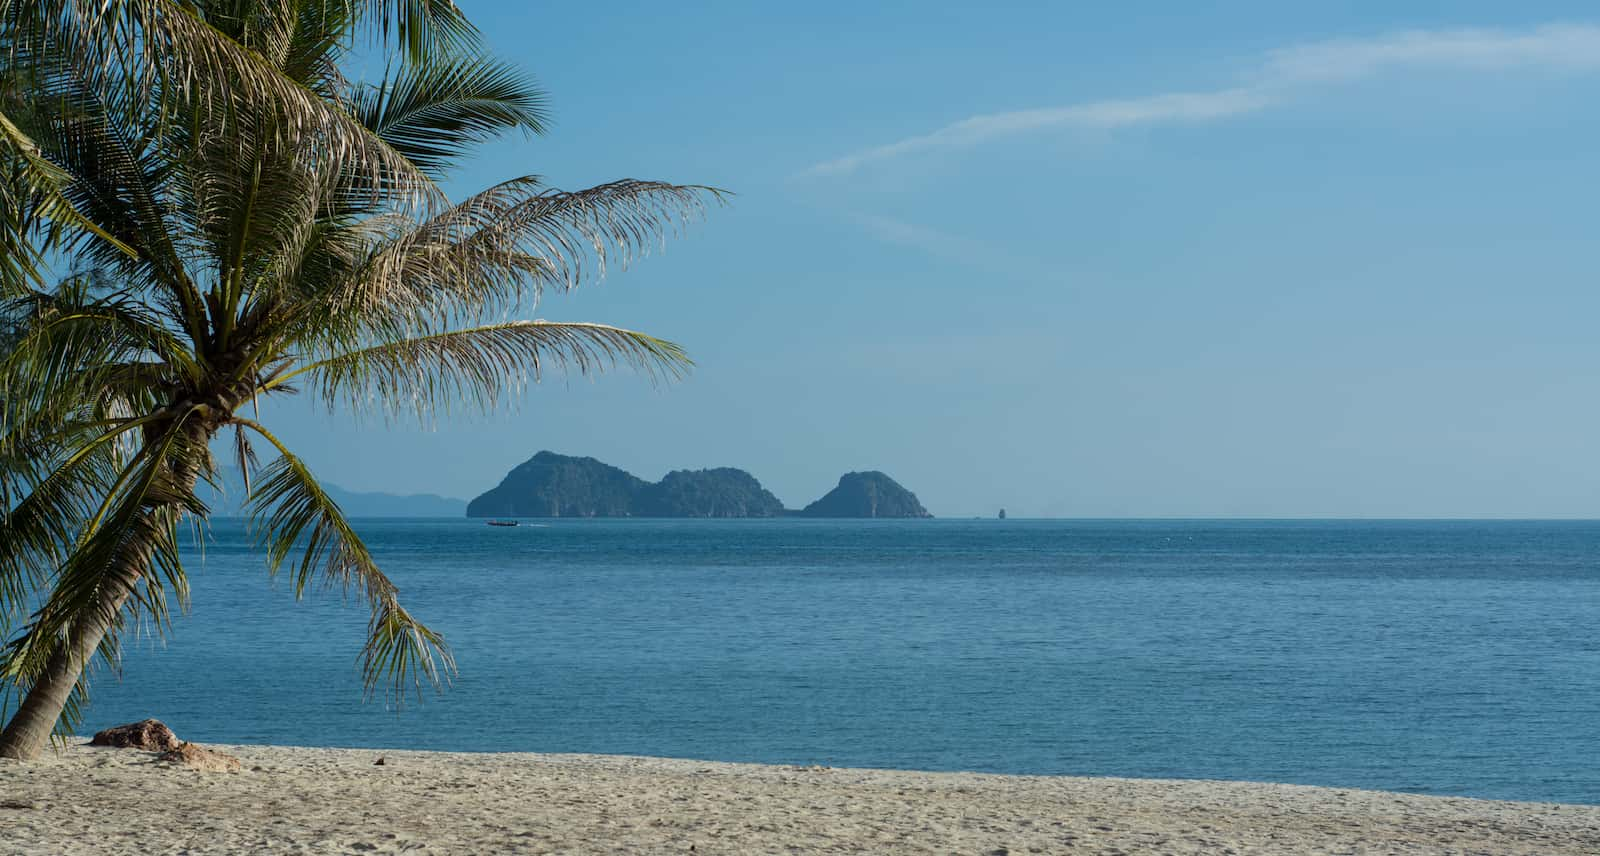 Om Detox and The Retreat, Retreat on the beach in Thailand